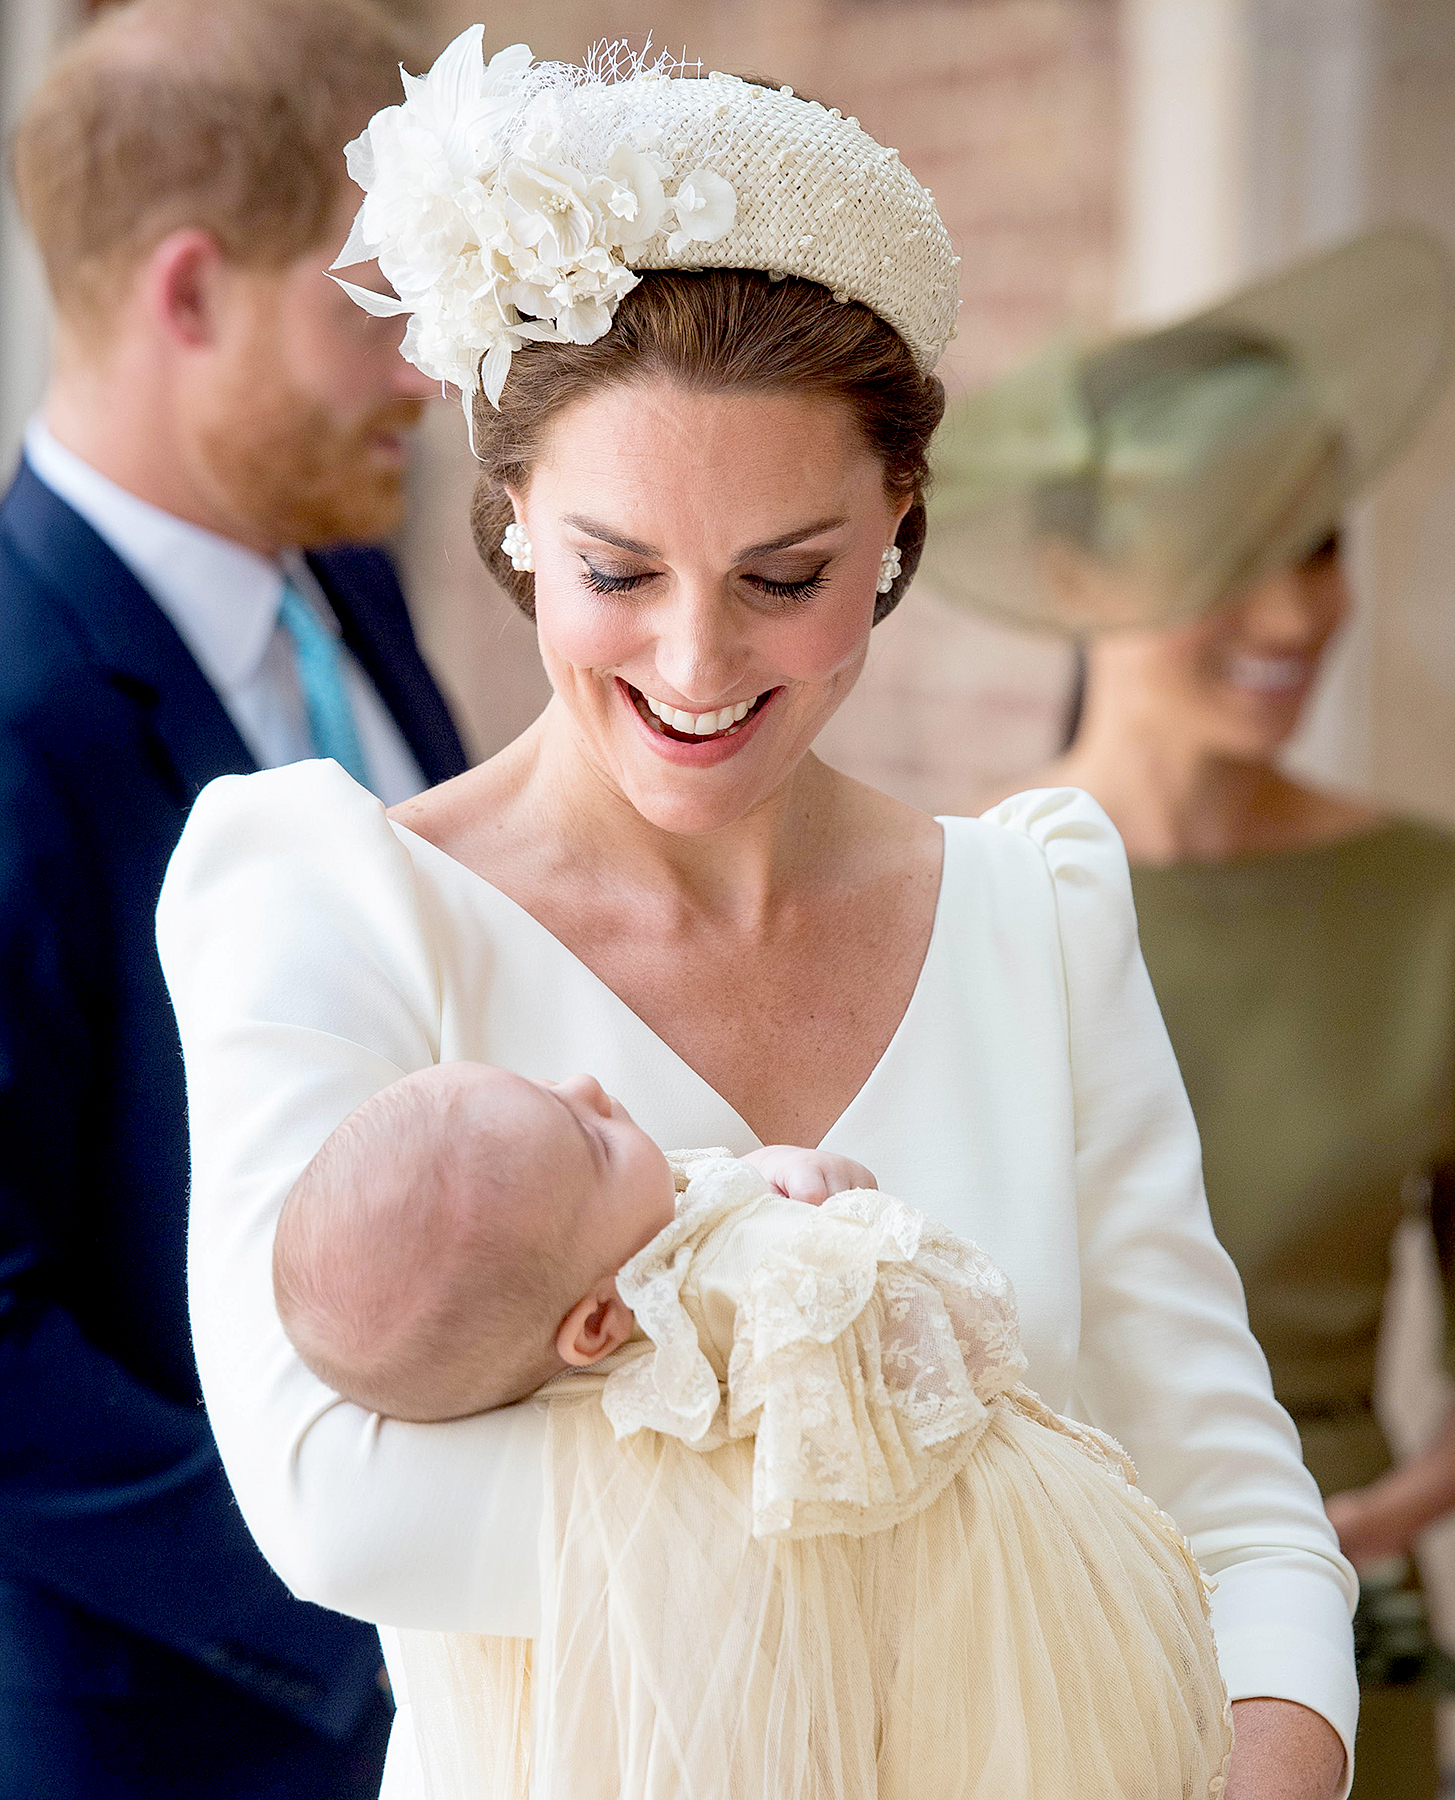 Britain's Prince Louis to be christened in private ceremony